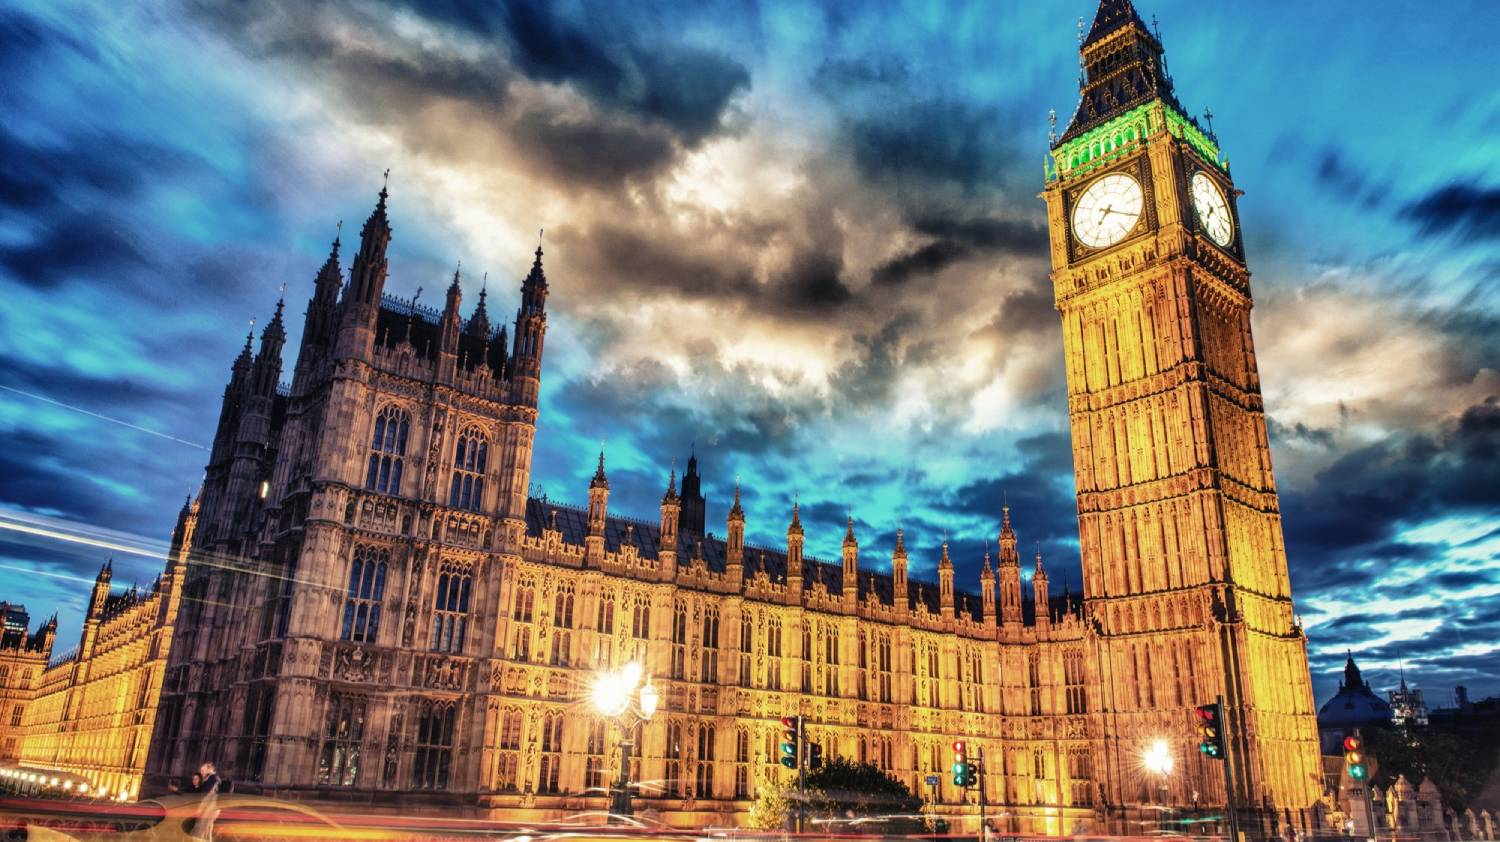 Big Ben & Houses of Parliament (Palace of Westminster) - Things To Do In London